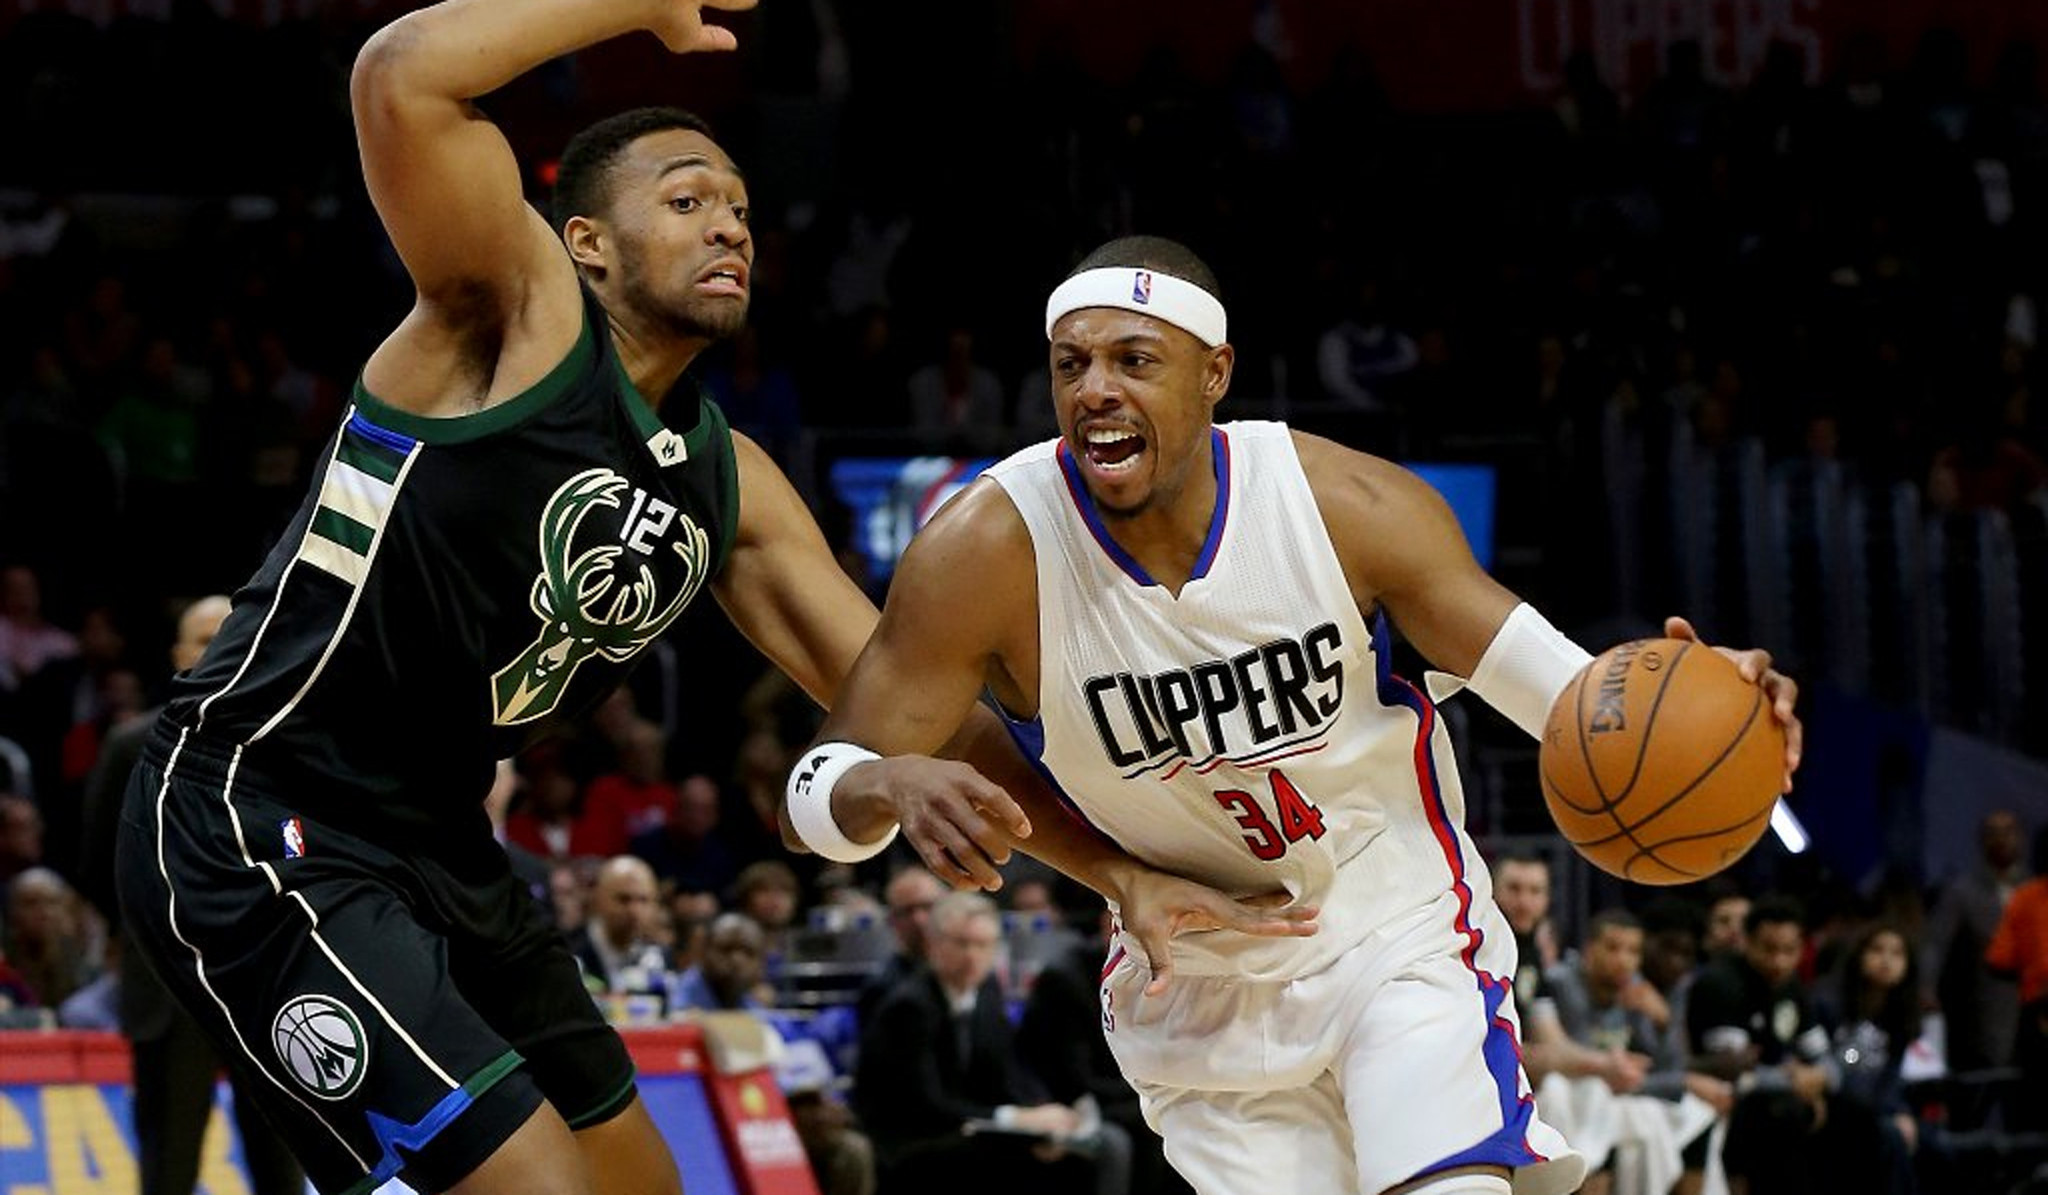 La-sp-clippers-cn-pierce-20160816-snap